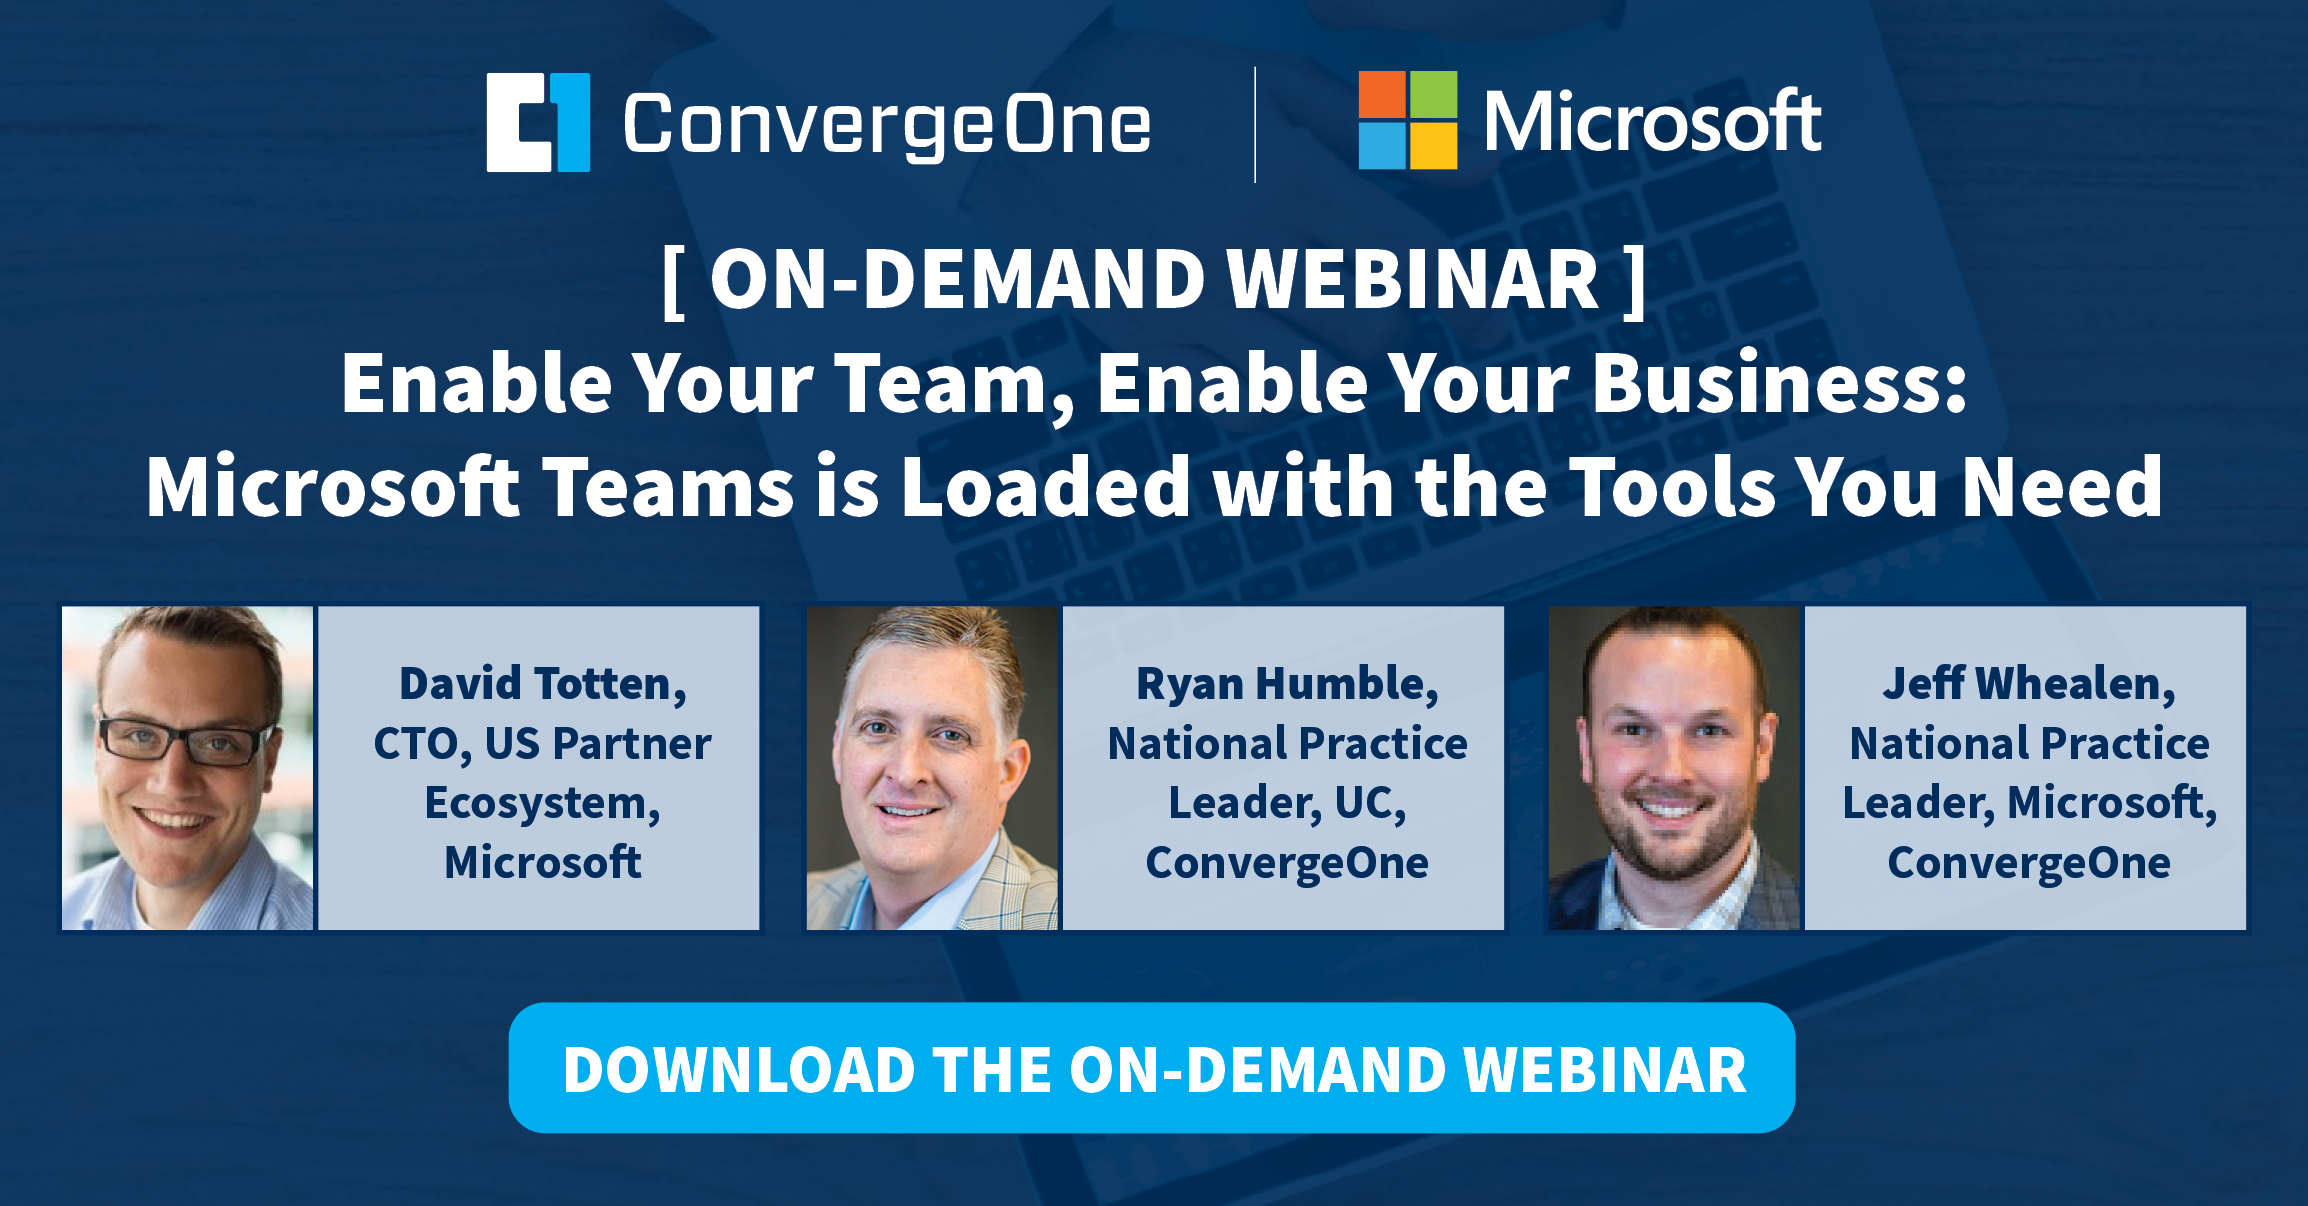 C1-Microsoft-Teams-On-Demand-Webinar-1